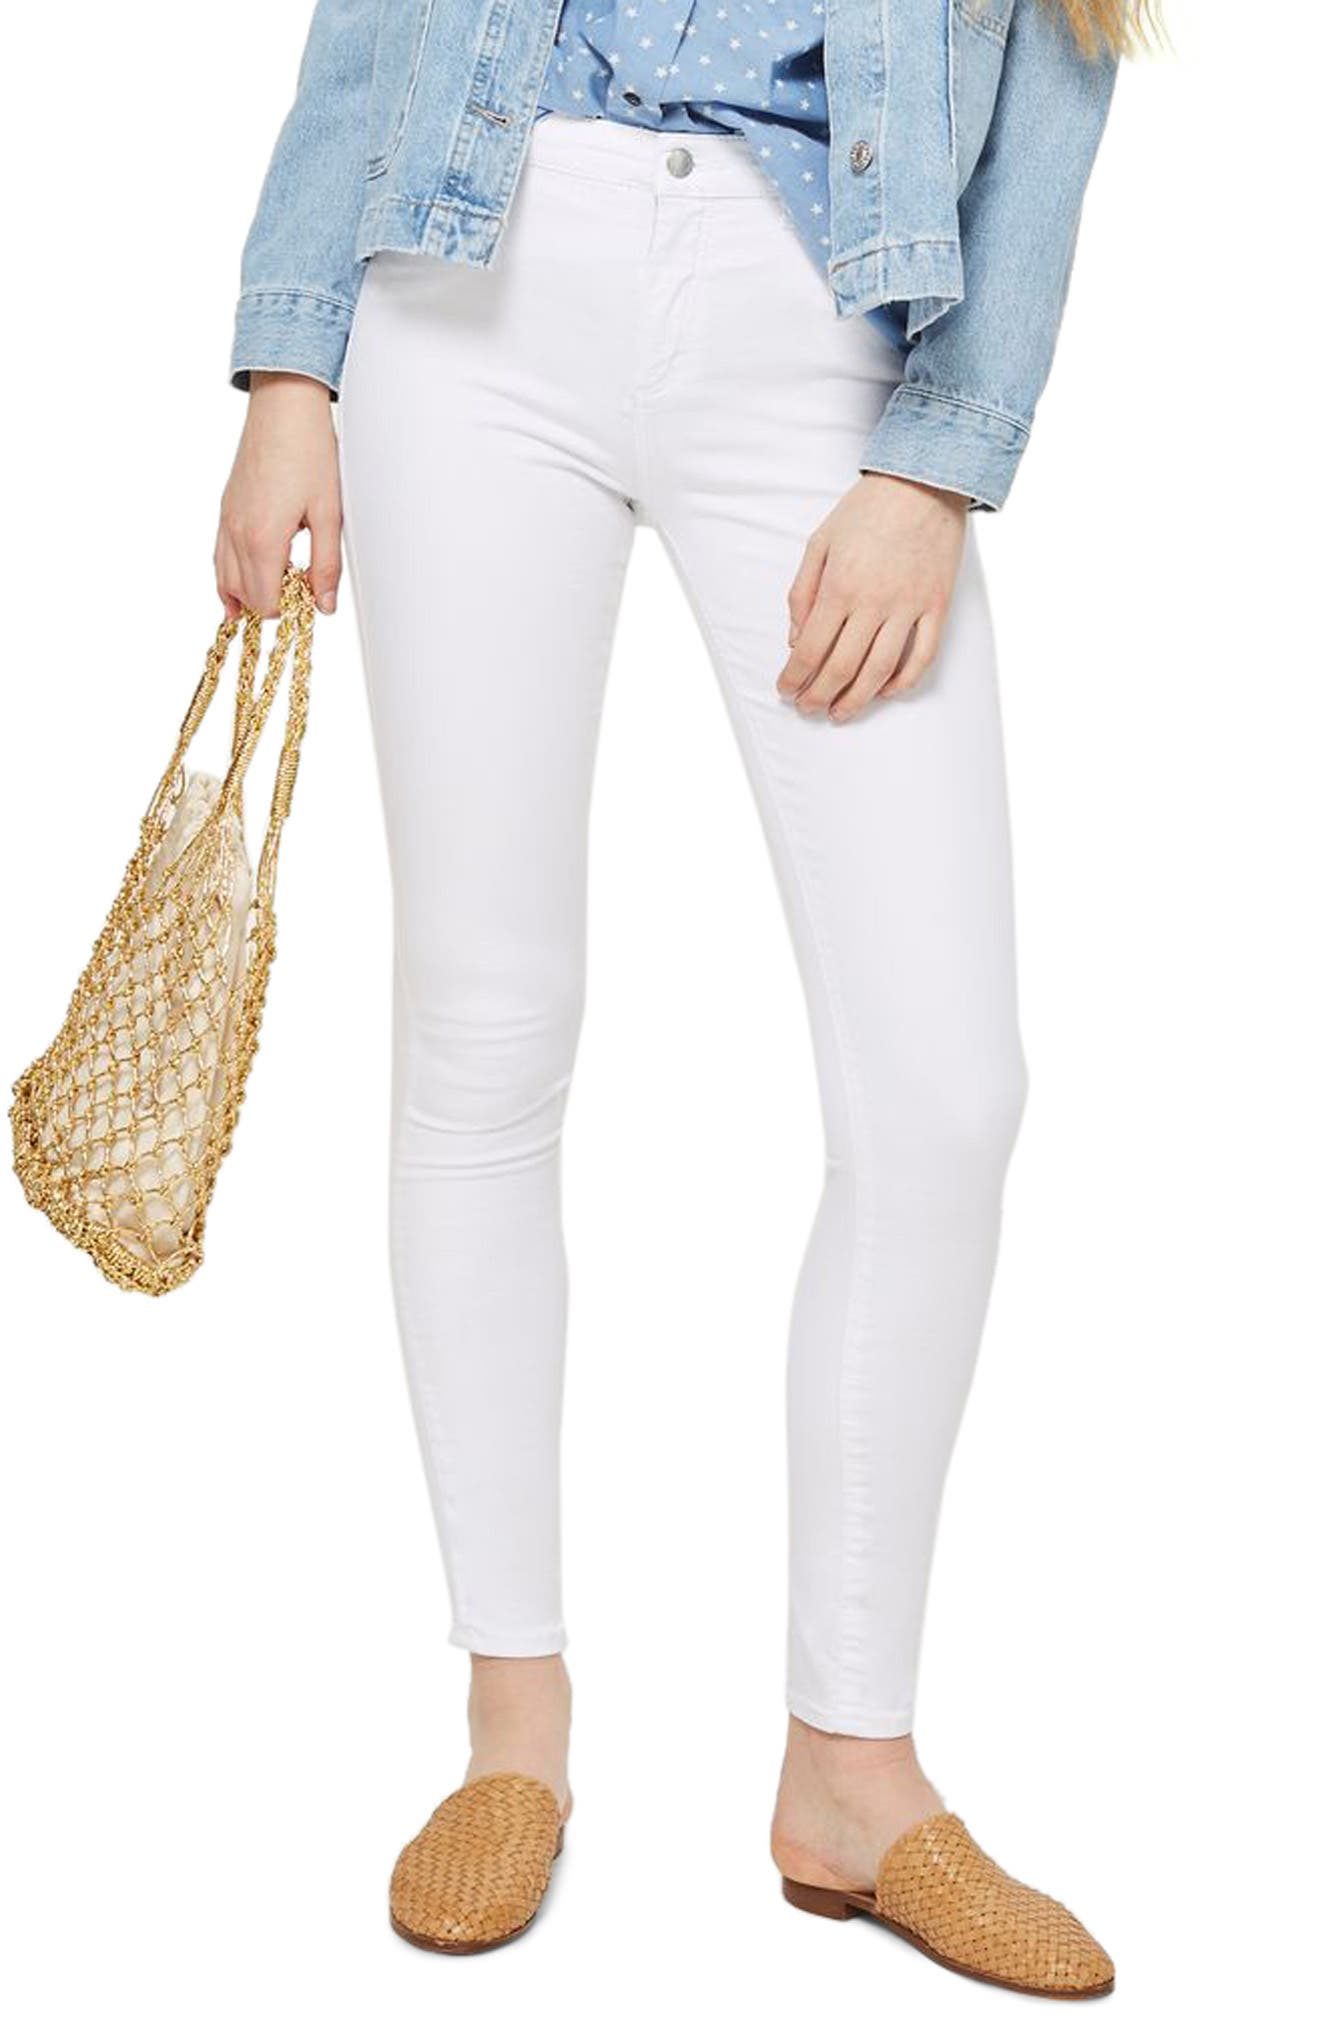 Leigh Skinny Jeans,                             Main thumbnail 1, color,                             100